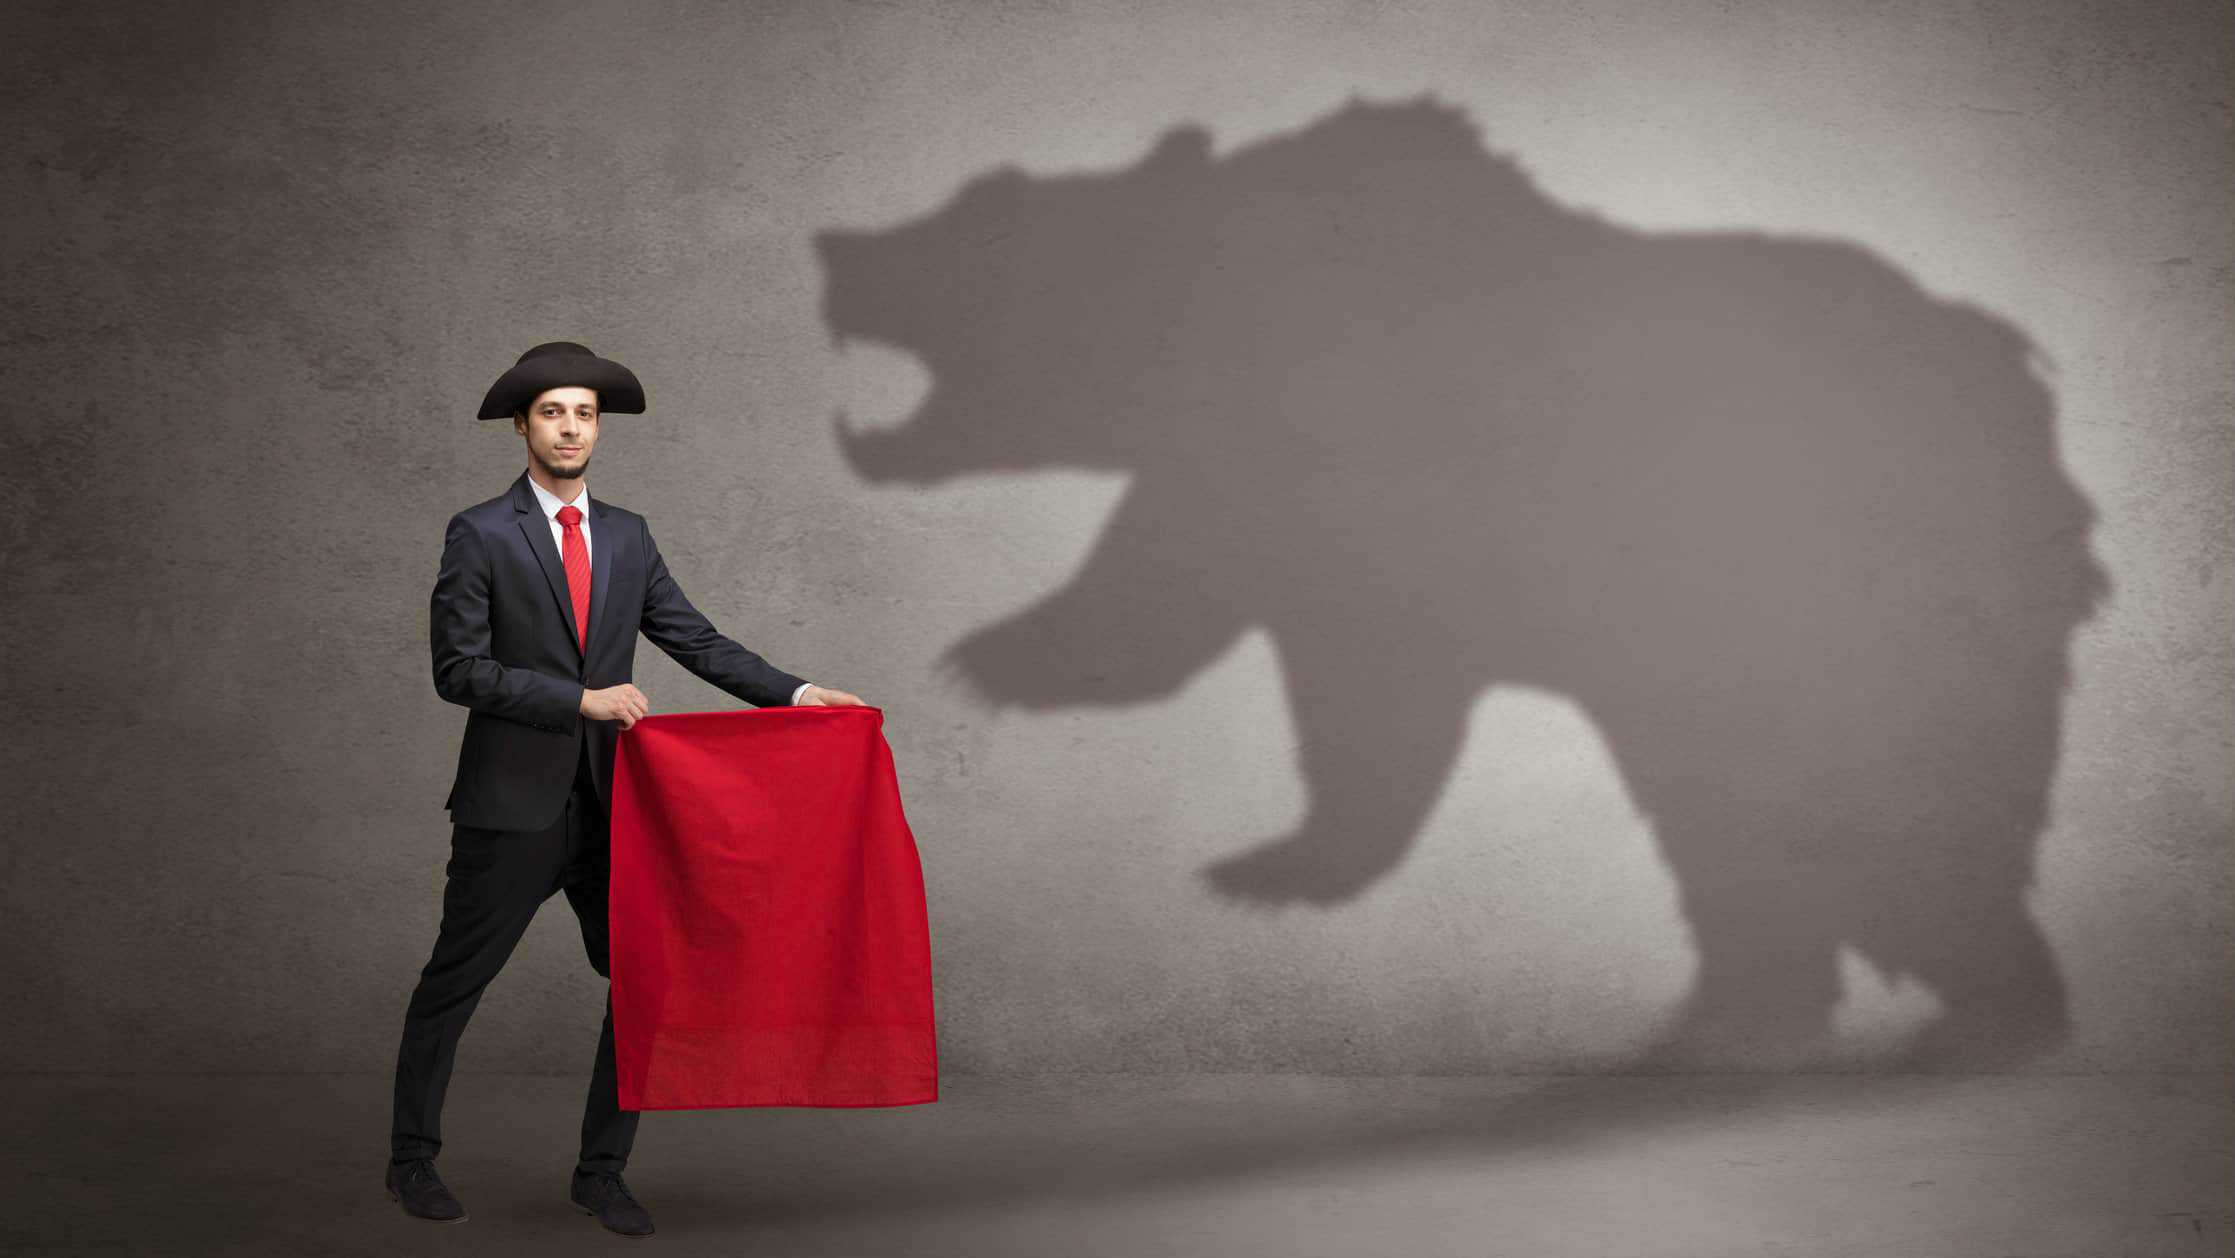 Broker holding red flag in front of bear